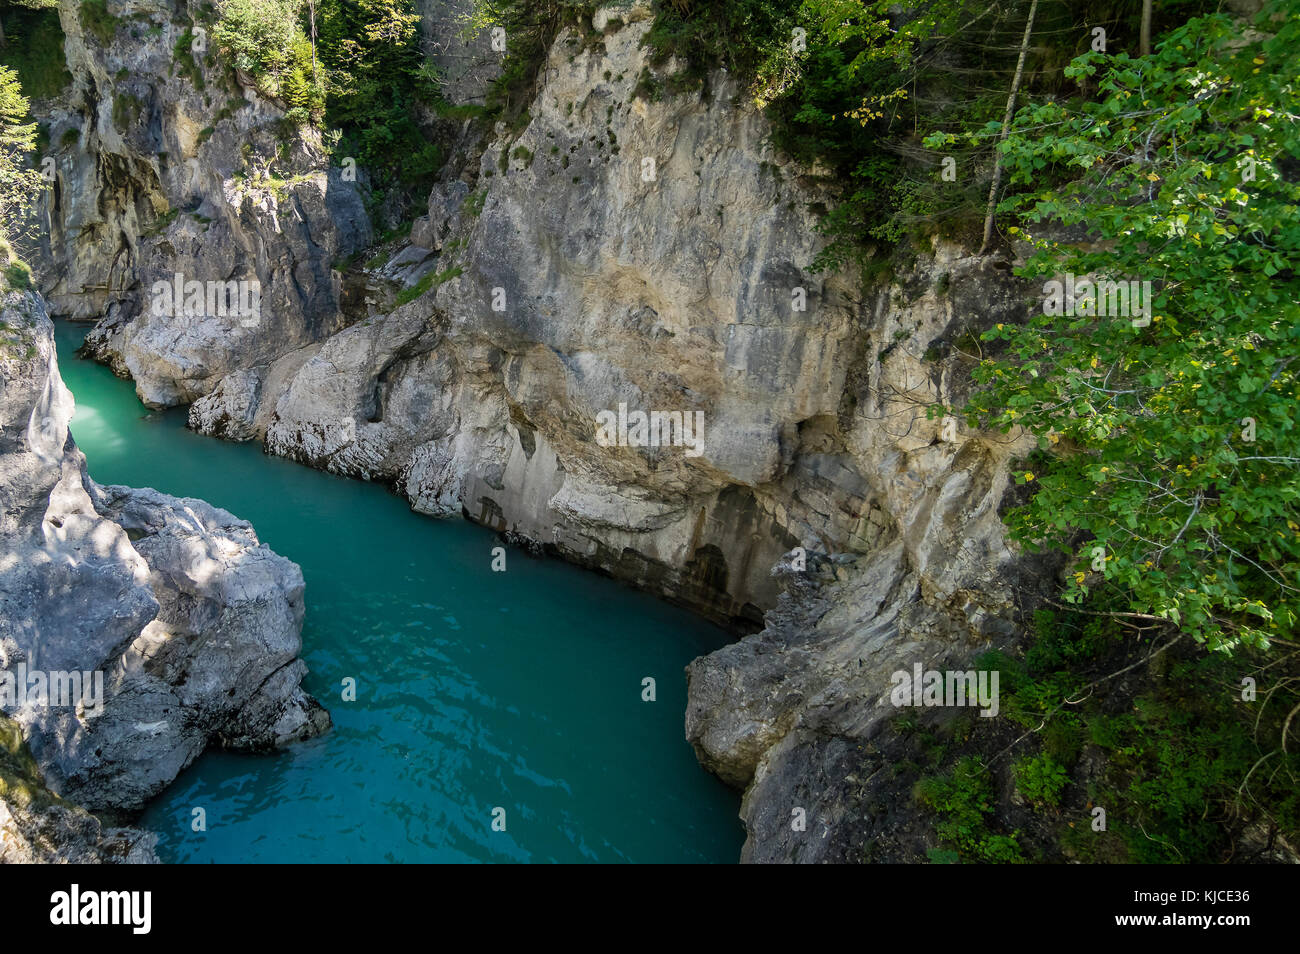 Detail of the Lech canyon near Fussen, Bavaria, Germany - Stock Image